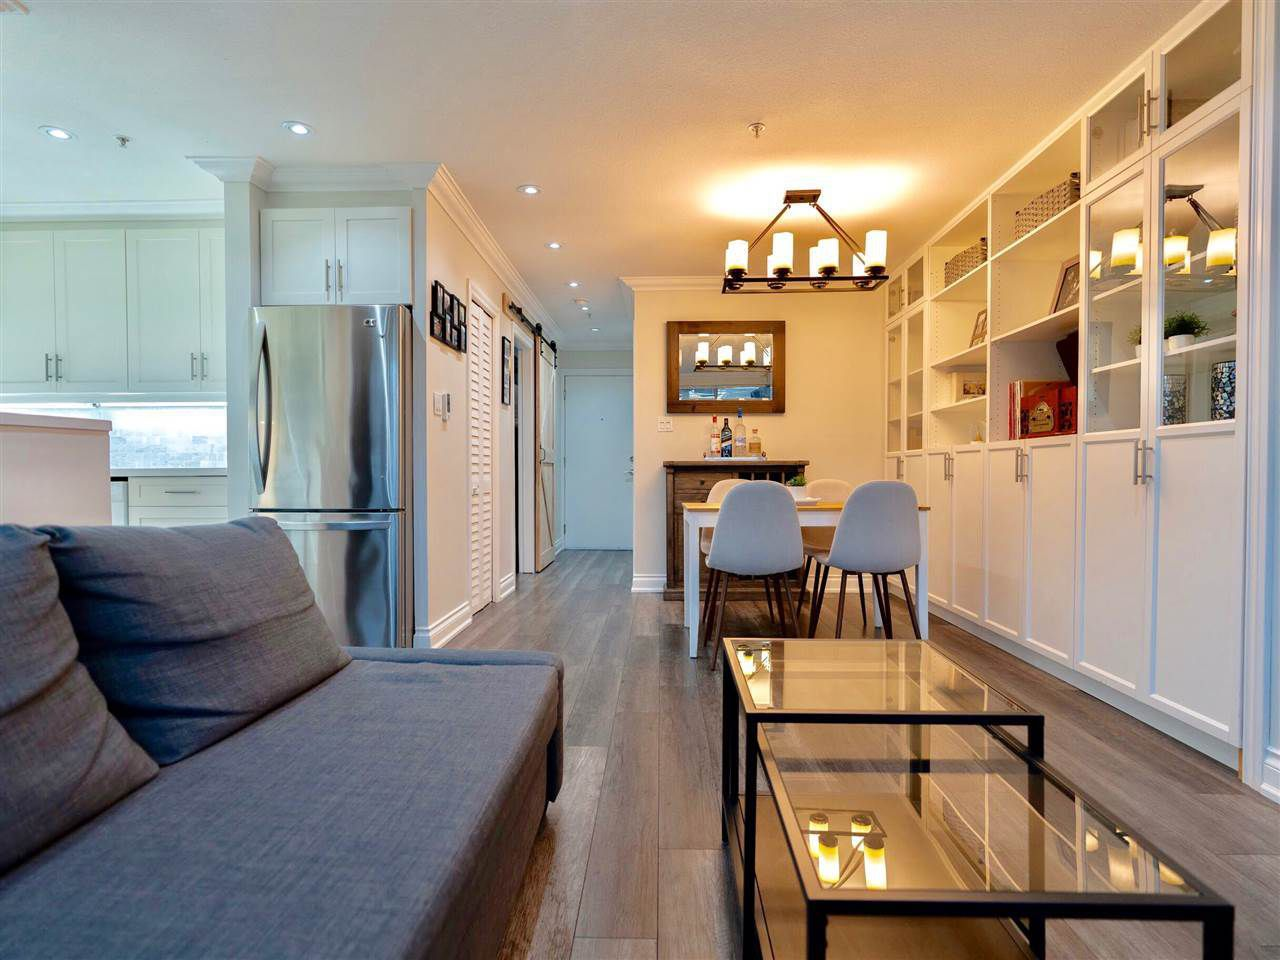 Main Photo: 203 2287 W 3RD Avenue in Vancouver: Kitsilano Condo for sale (Vancouver West)  : MLS®# R2320768